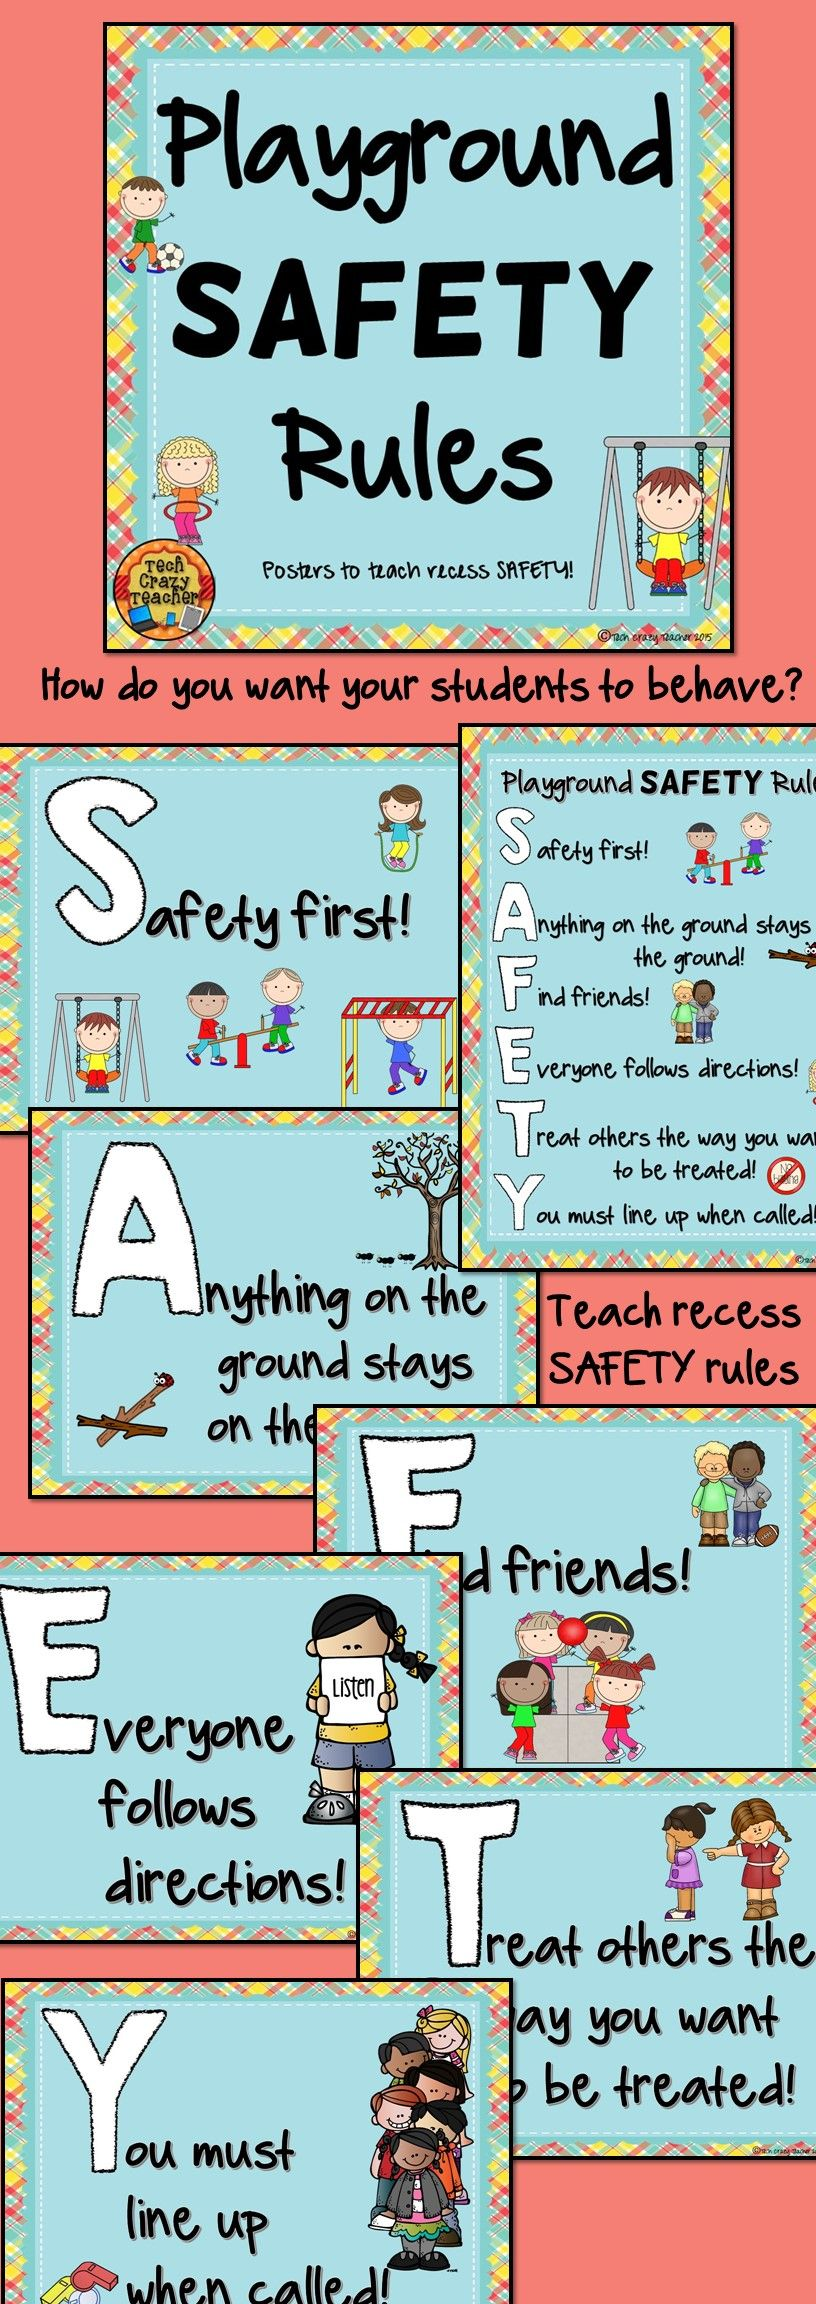 essay about traffic safety Ielts writing task 2: 'road safety' essay here's the full essay that i wrote with my students for the question below some people think that strict punishments for.